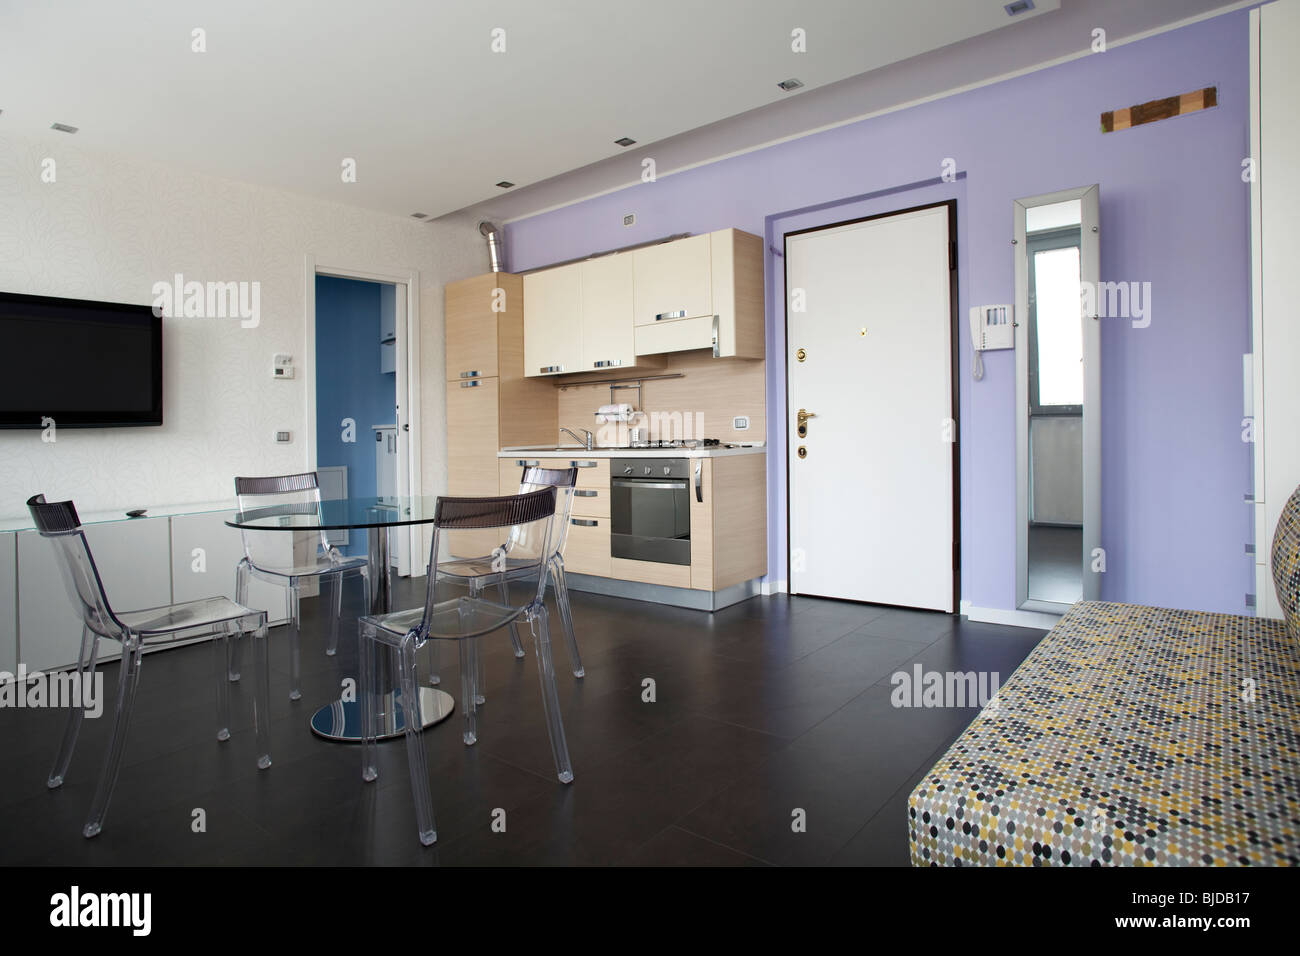 Living In One Room Studio Apartment With Everything Included In One Room Kitchen